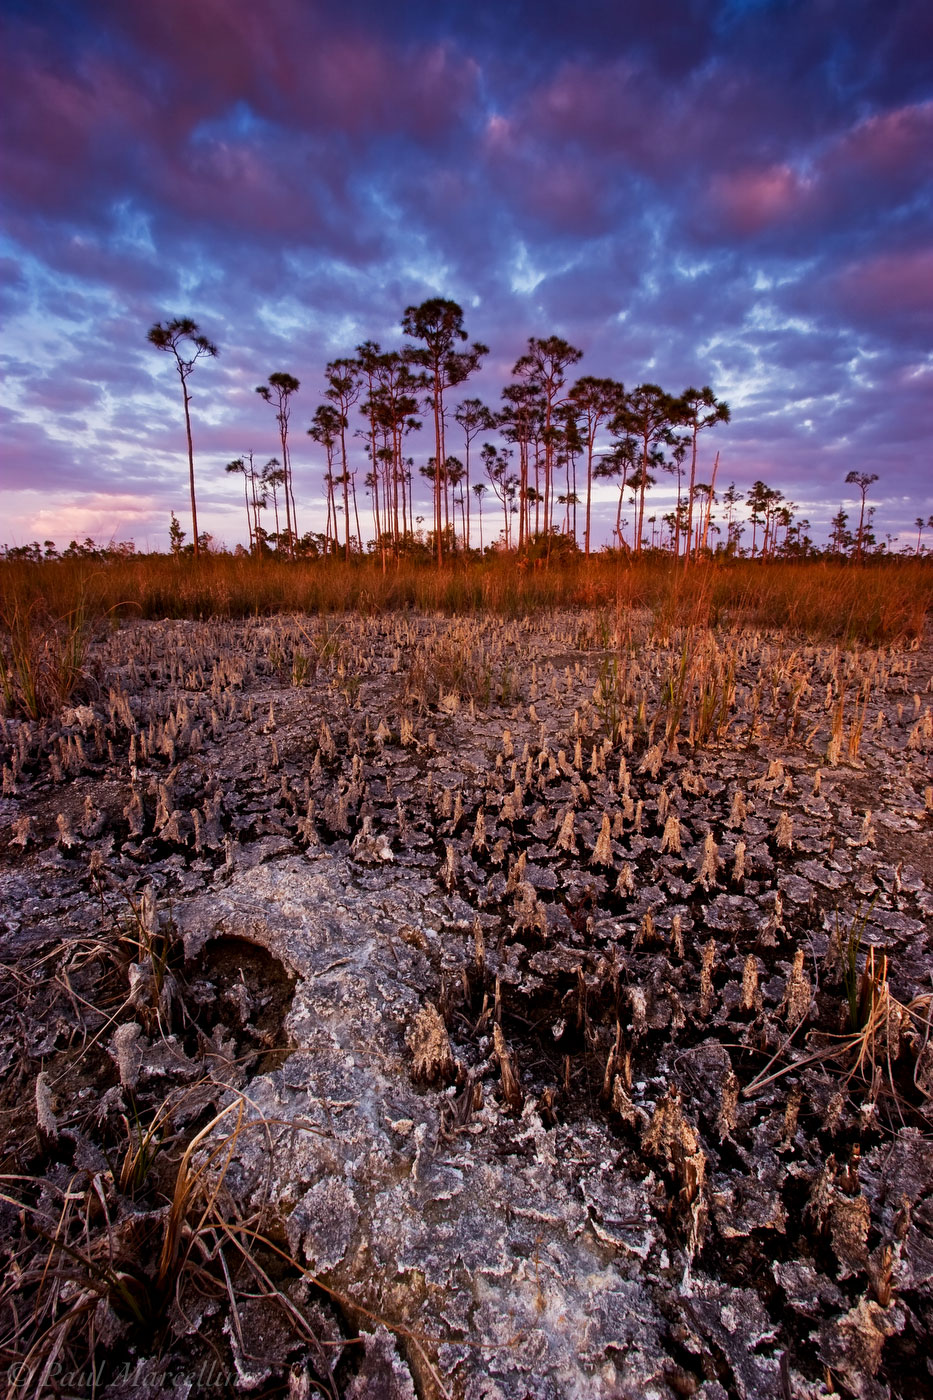 everglades, pinelands, sunset, periphyton, dry season, Florida, nature, photography, florida national parks, photo